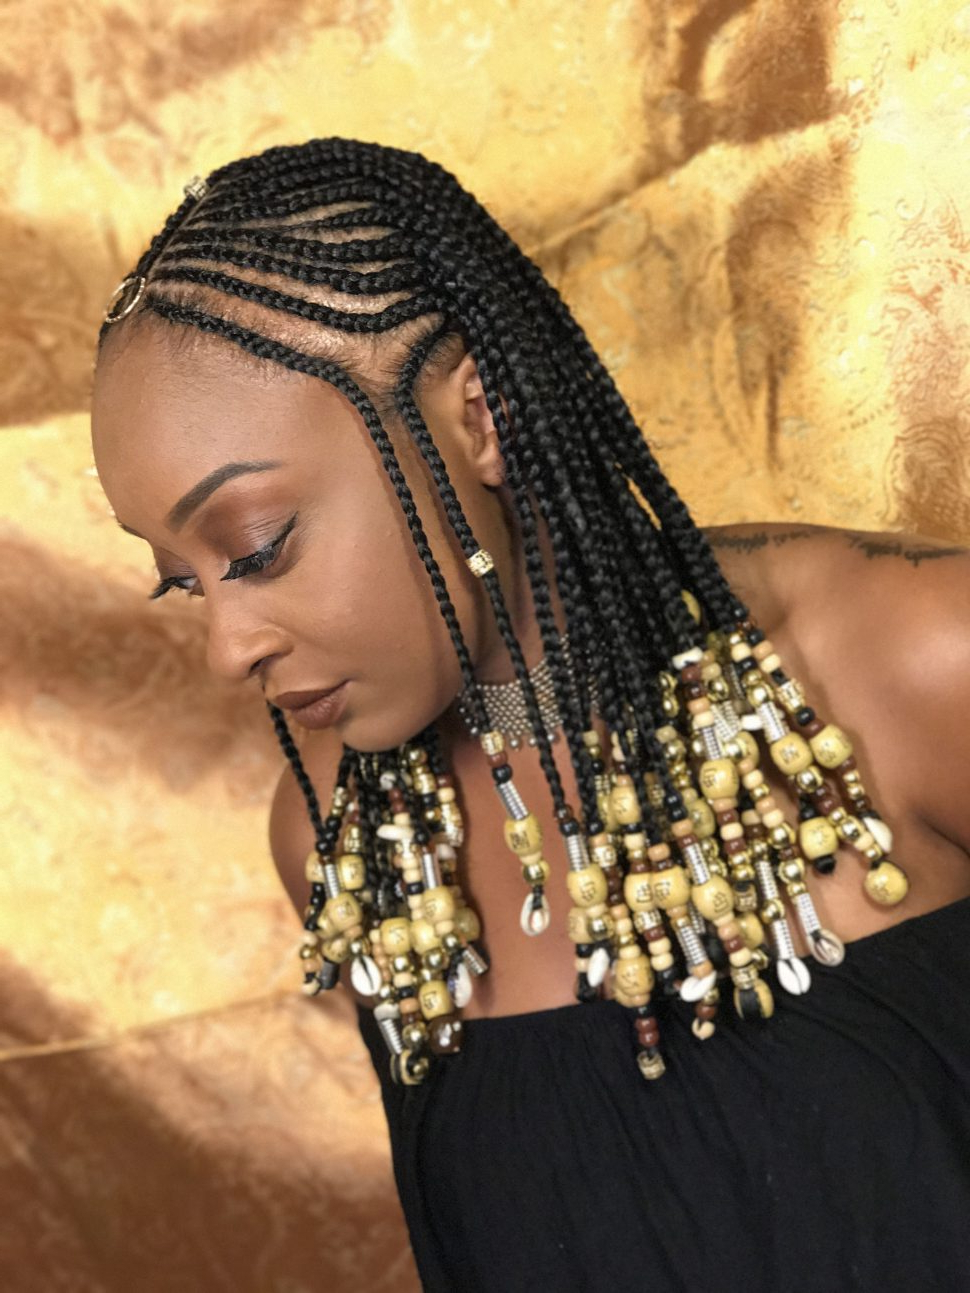 Hairstyles : African Braid Hairstyles Black American Braided With Most Up To Date Short Beaded Bob Hairstyles (View 18 of 20)